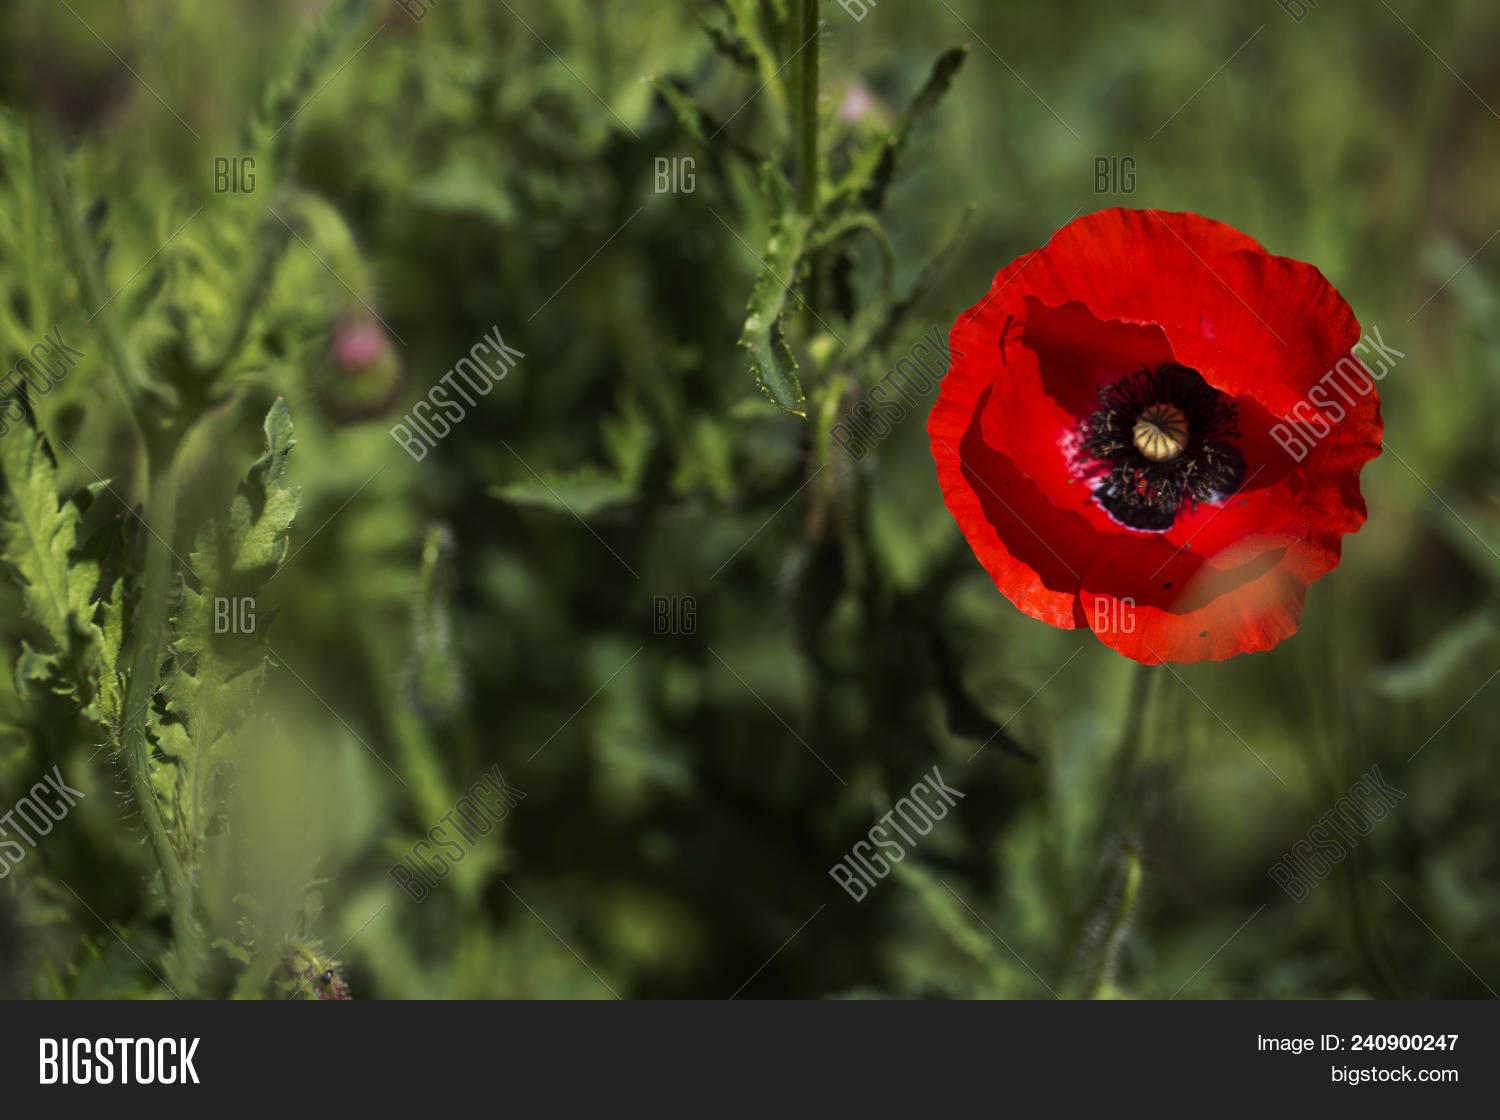 Red Poppy On Green Image & Photo (Free Trial) | Bigstock